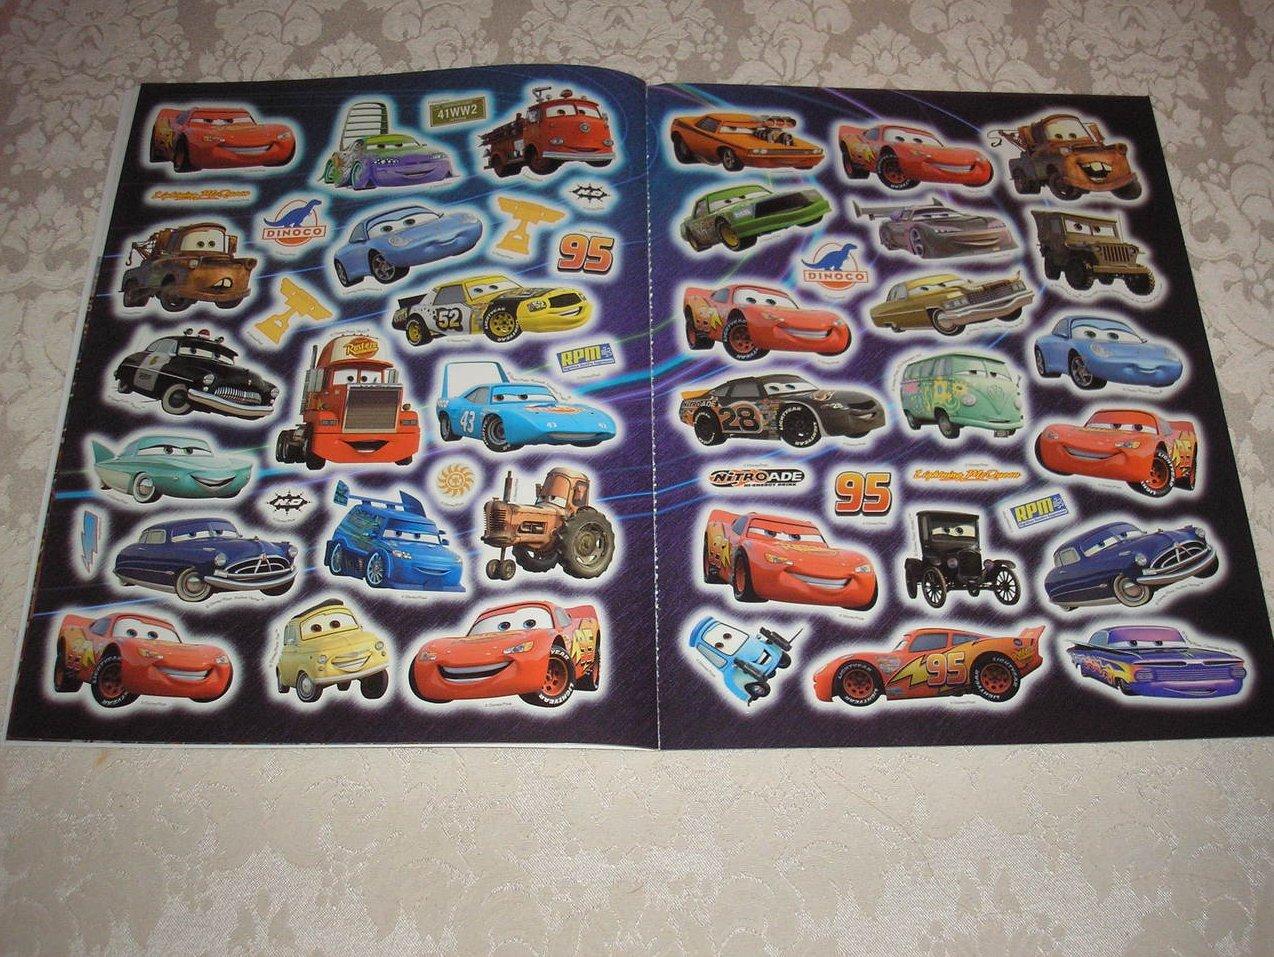 Image 3 of Disney Pixar Cars reusable glow in the dark Go With the Glow Stickers Book new